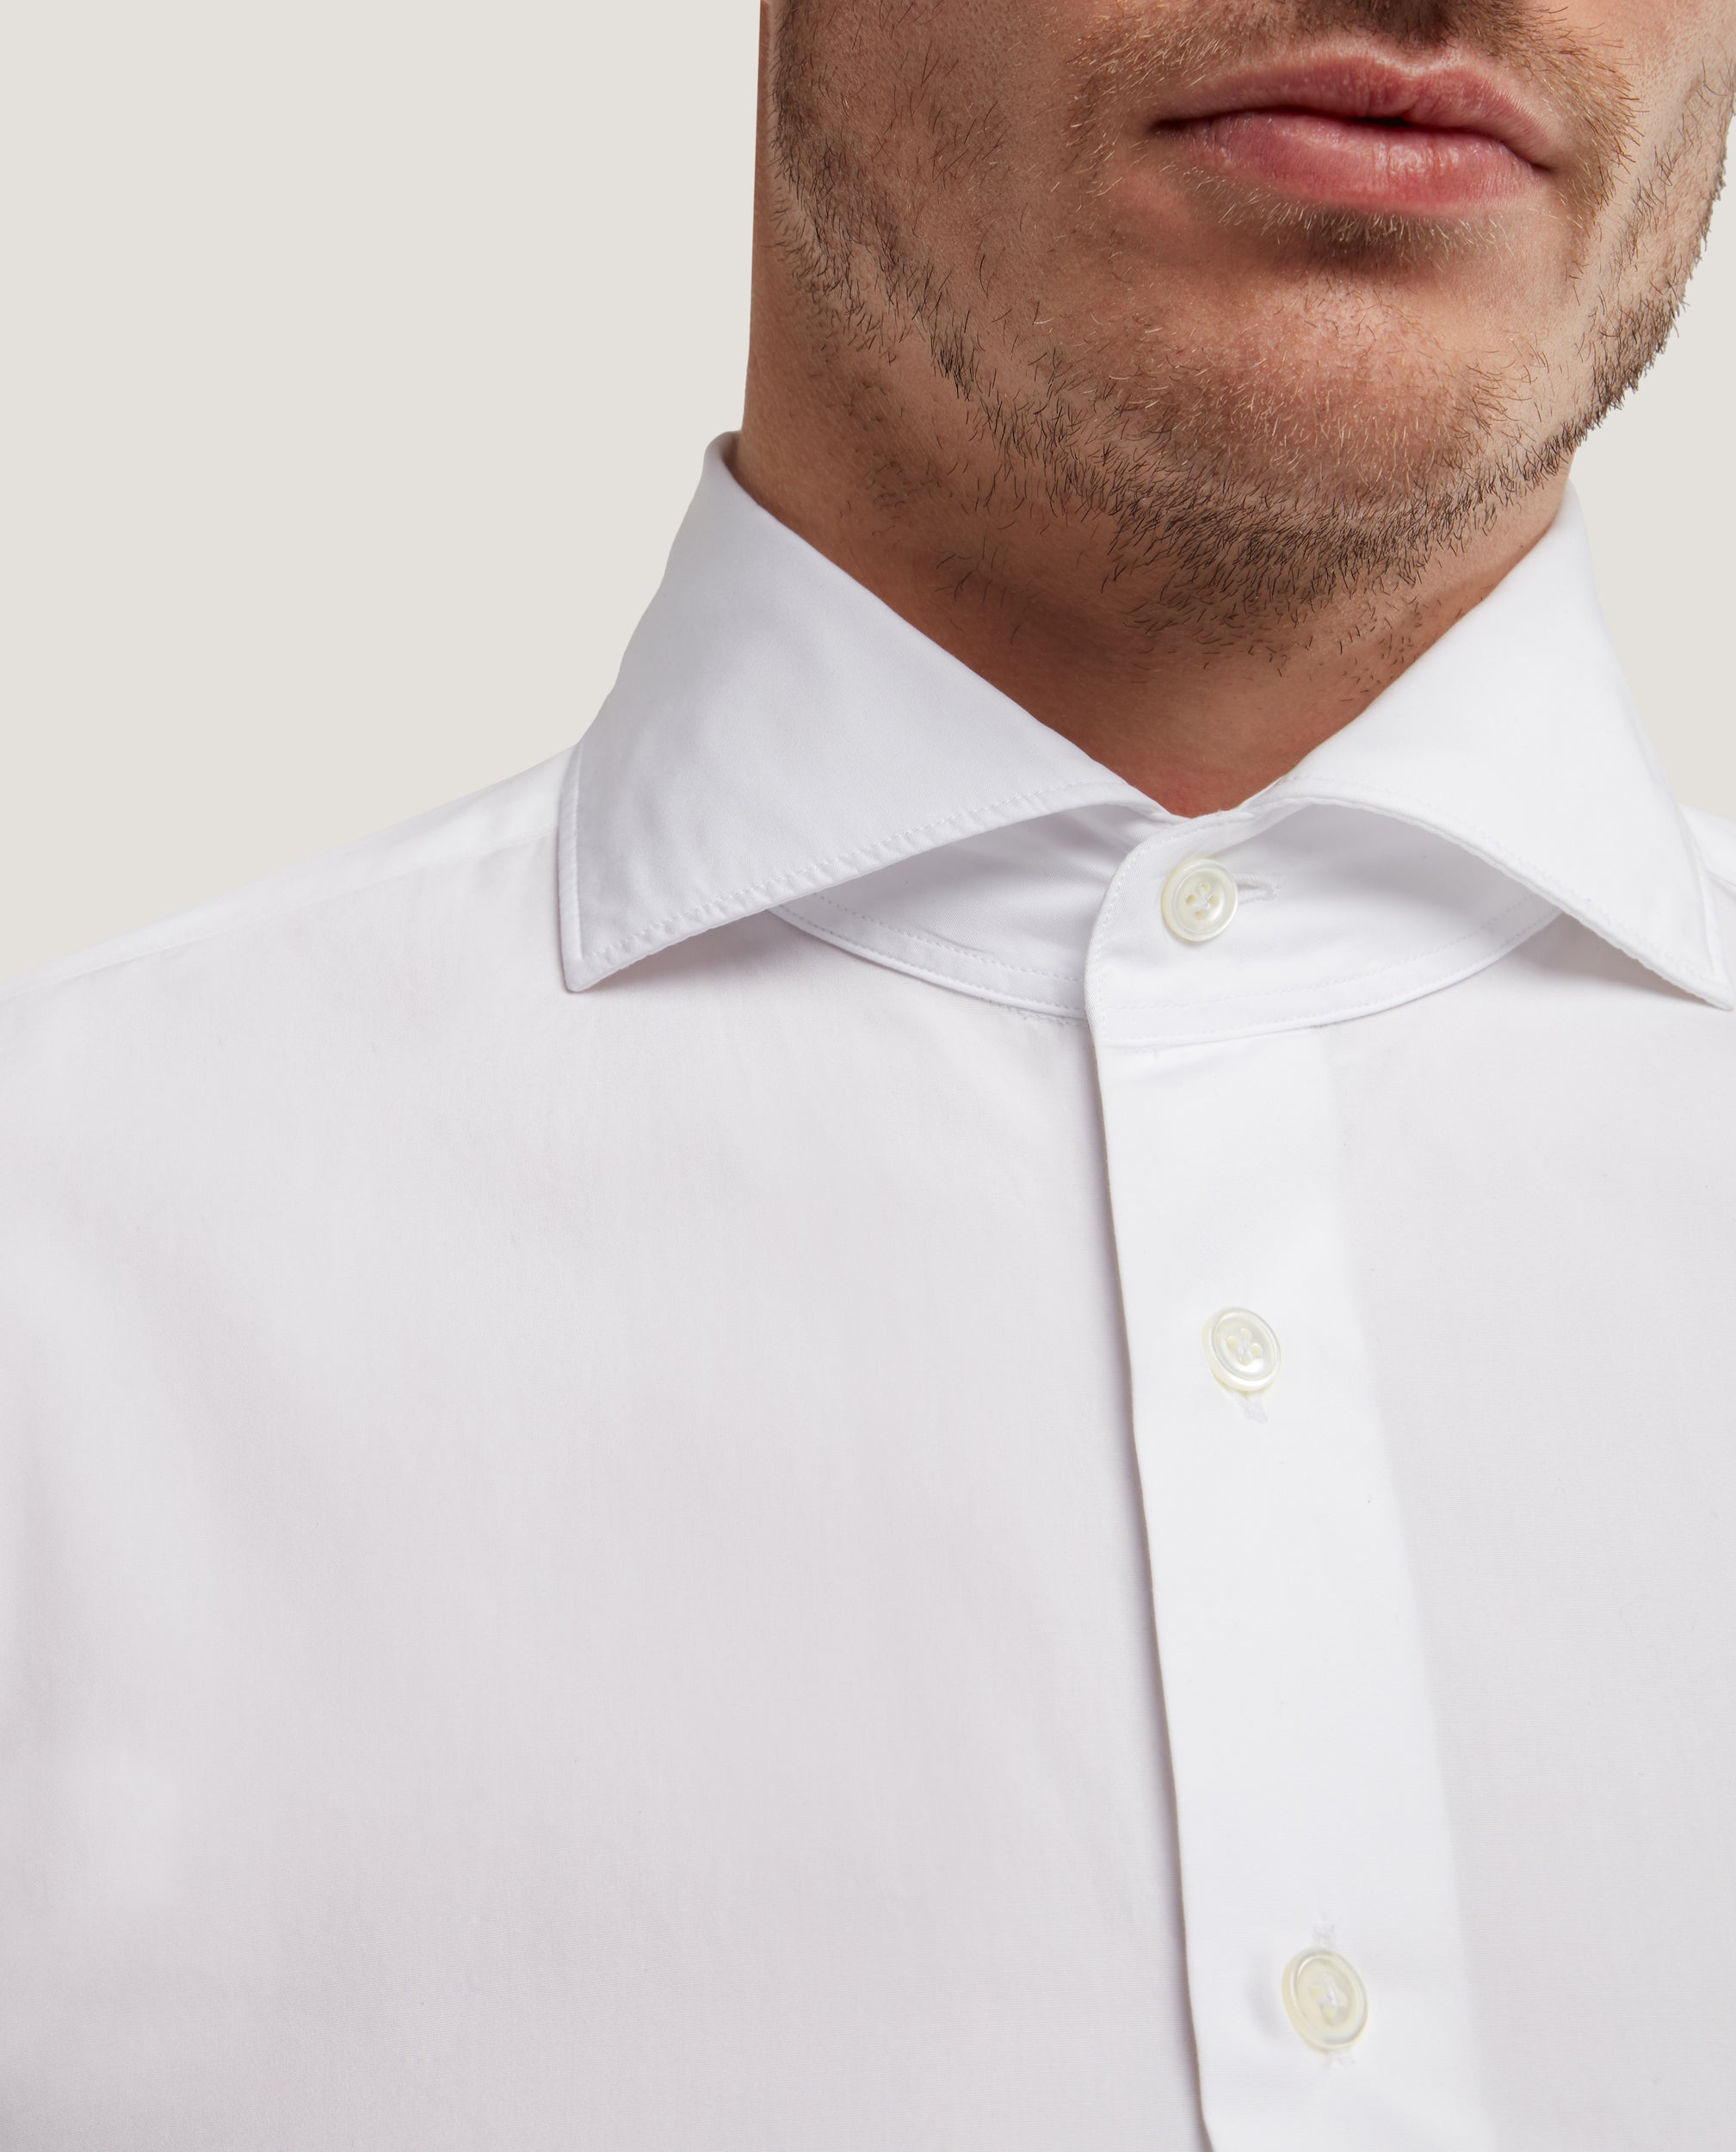 EVRON Slim fit shirt | Poplin